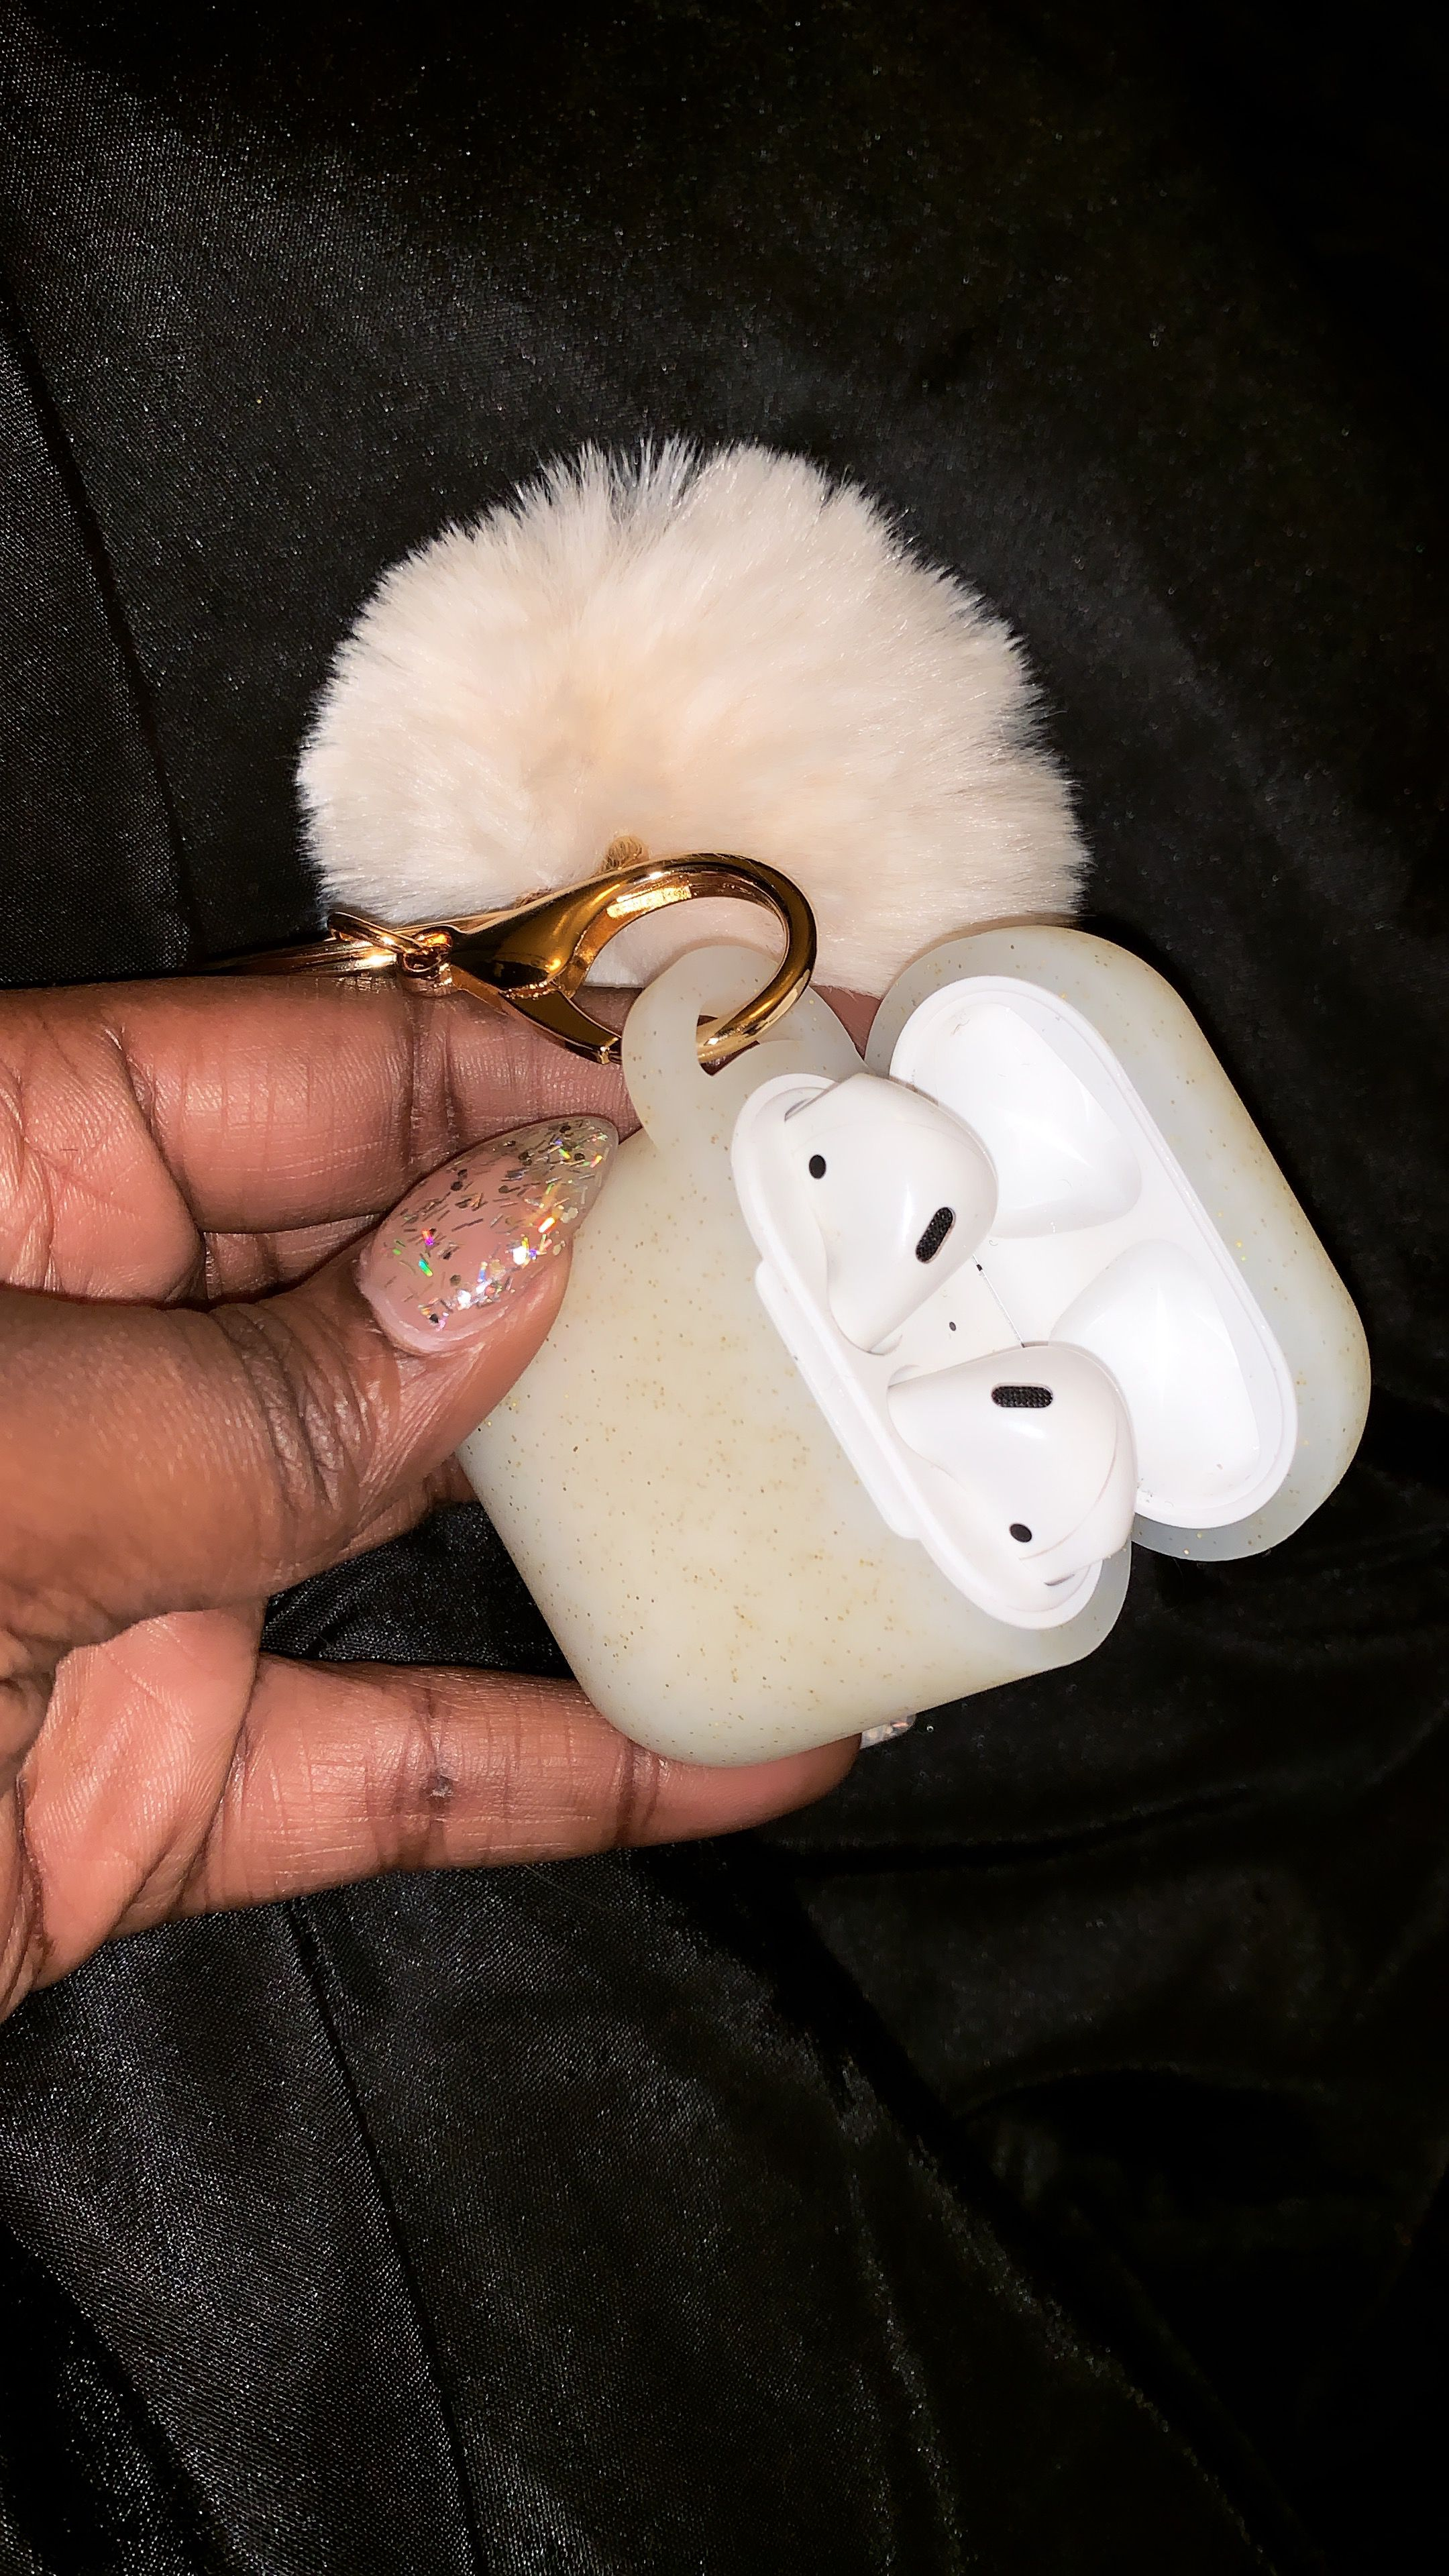 Air Pods Customization Accessoires Iphone Accessoires De Telephone Accessoire Mobile